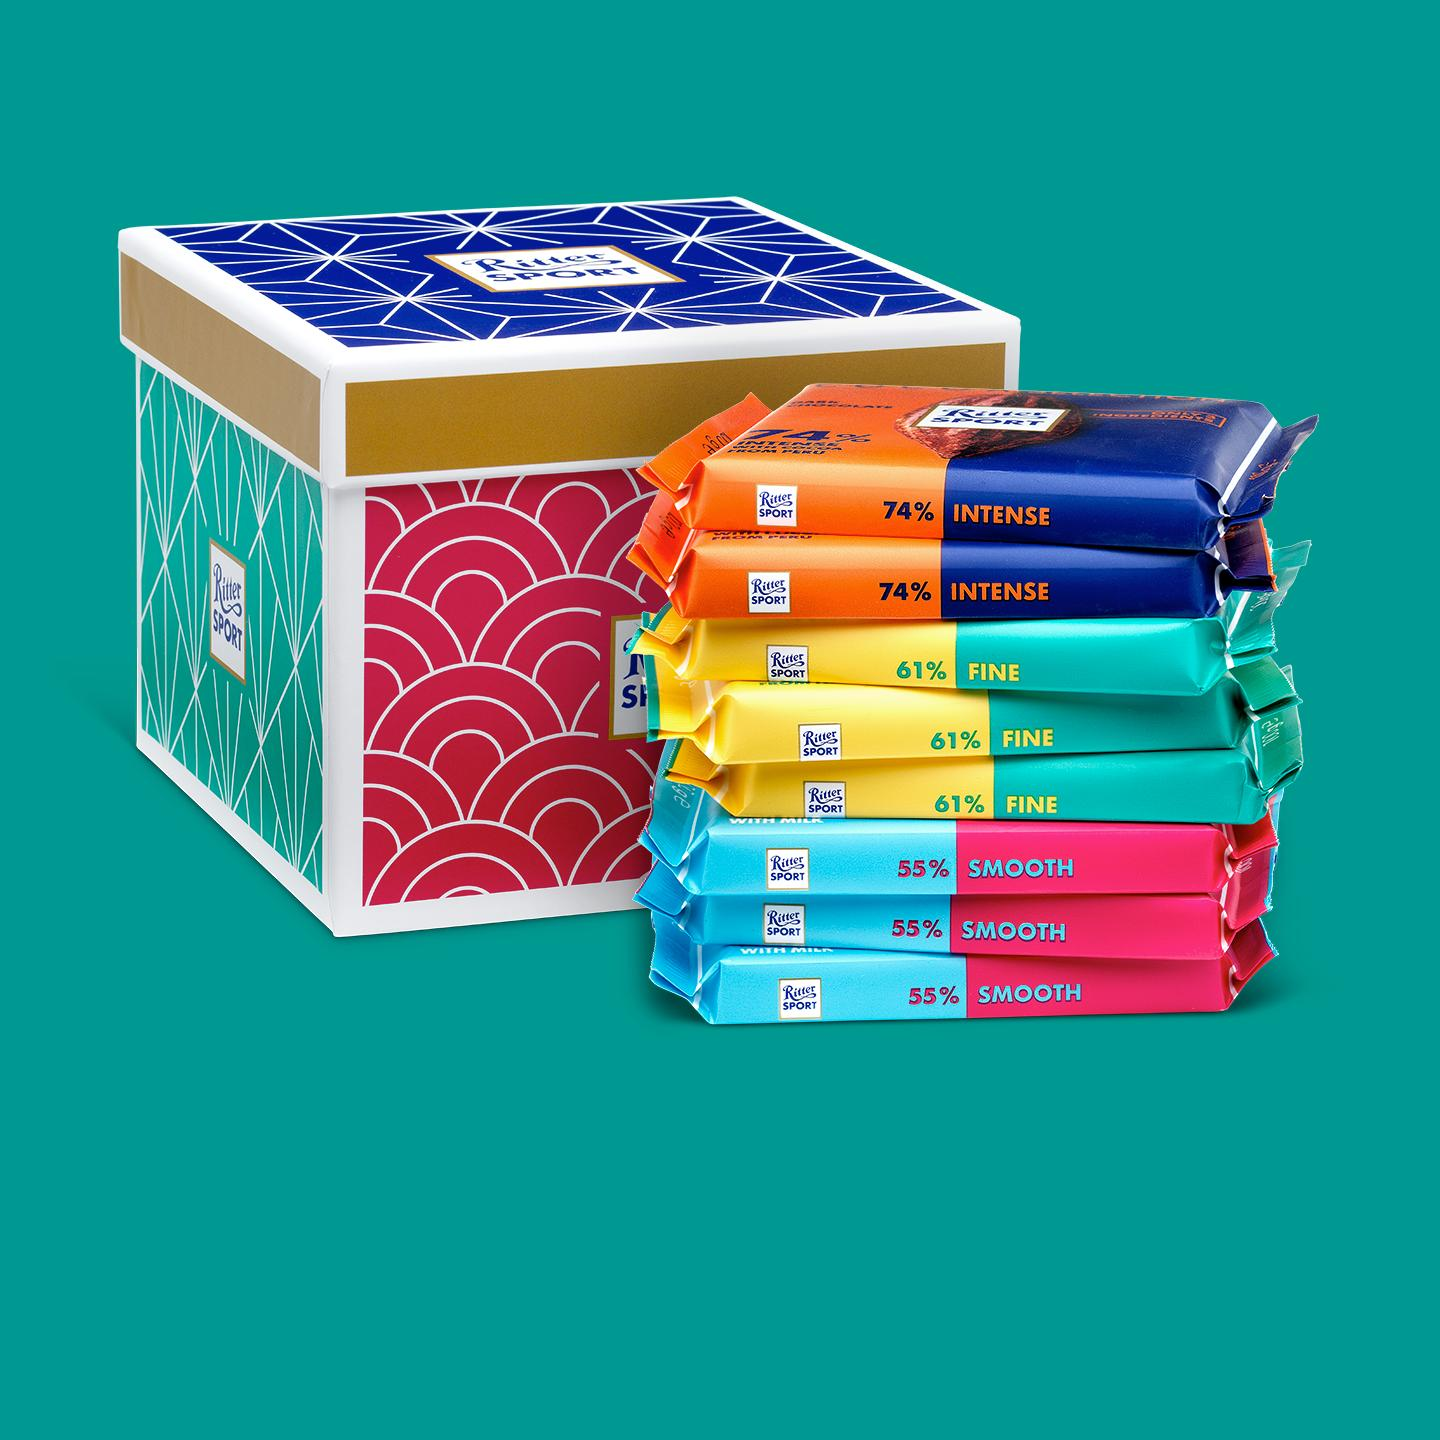 Dark chocolate selection gift box from Ritter Sport